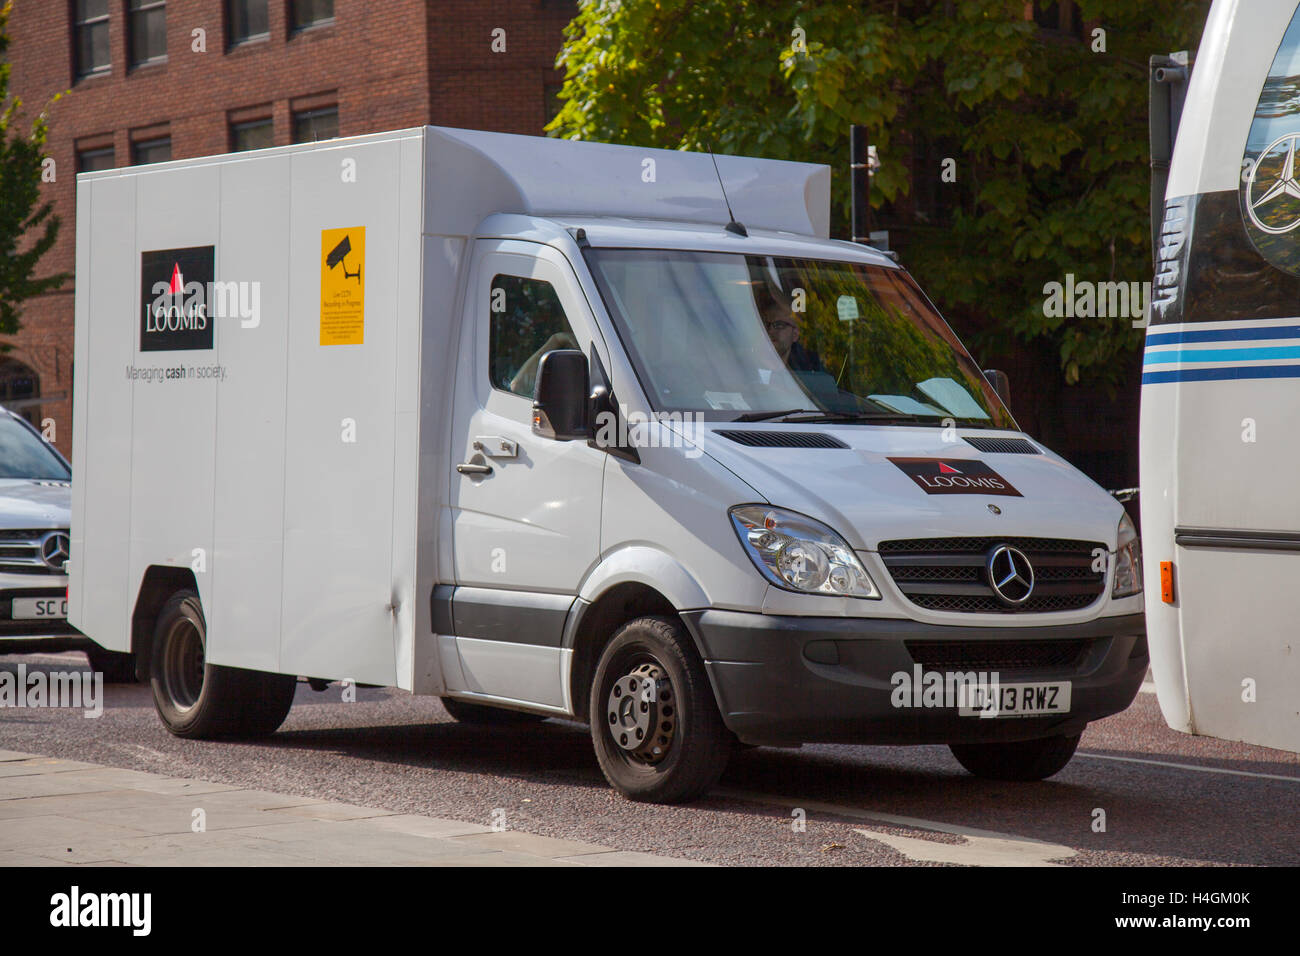 098499183de131 Loomis Security Van Stock Photos   Loomis Security Van Stock Images ...